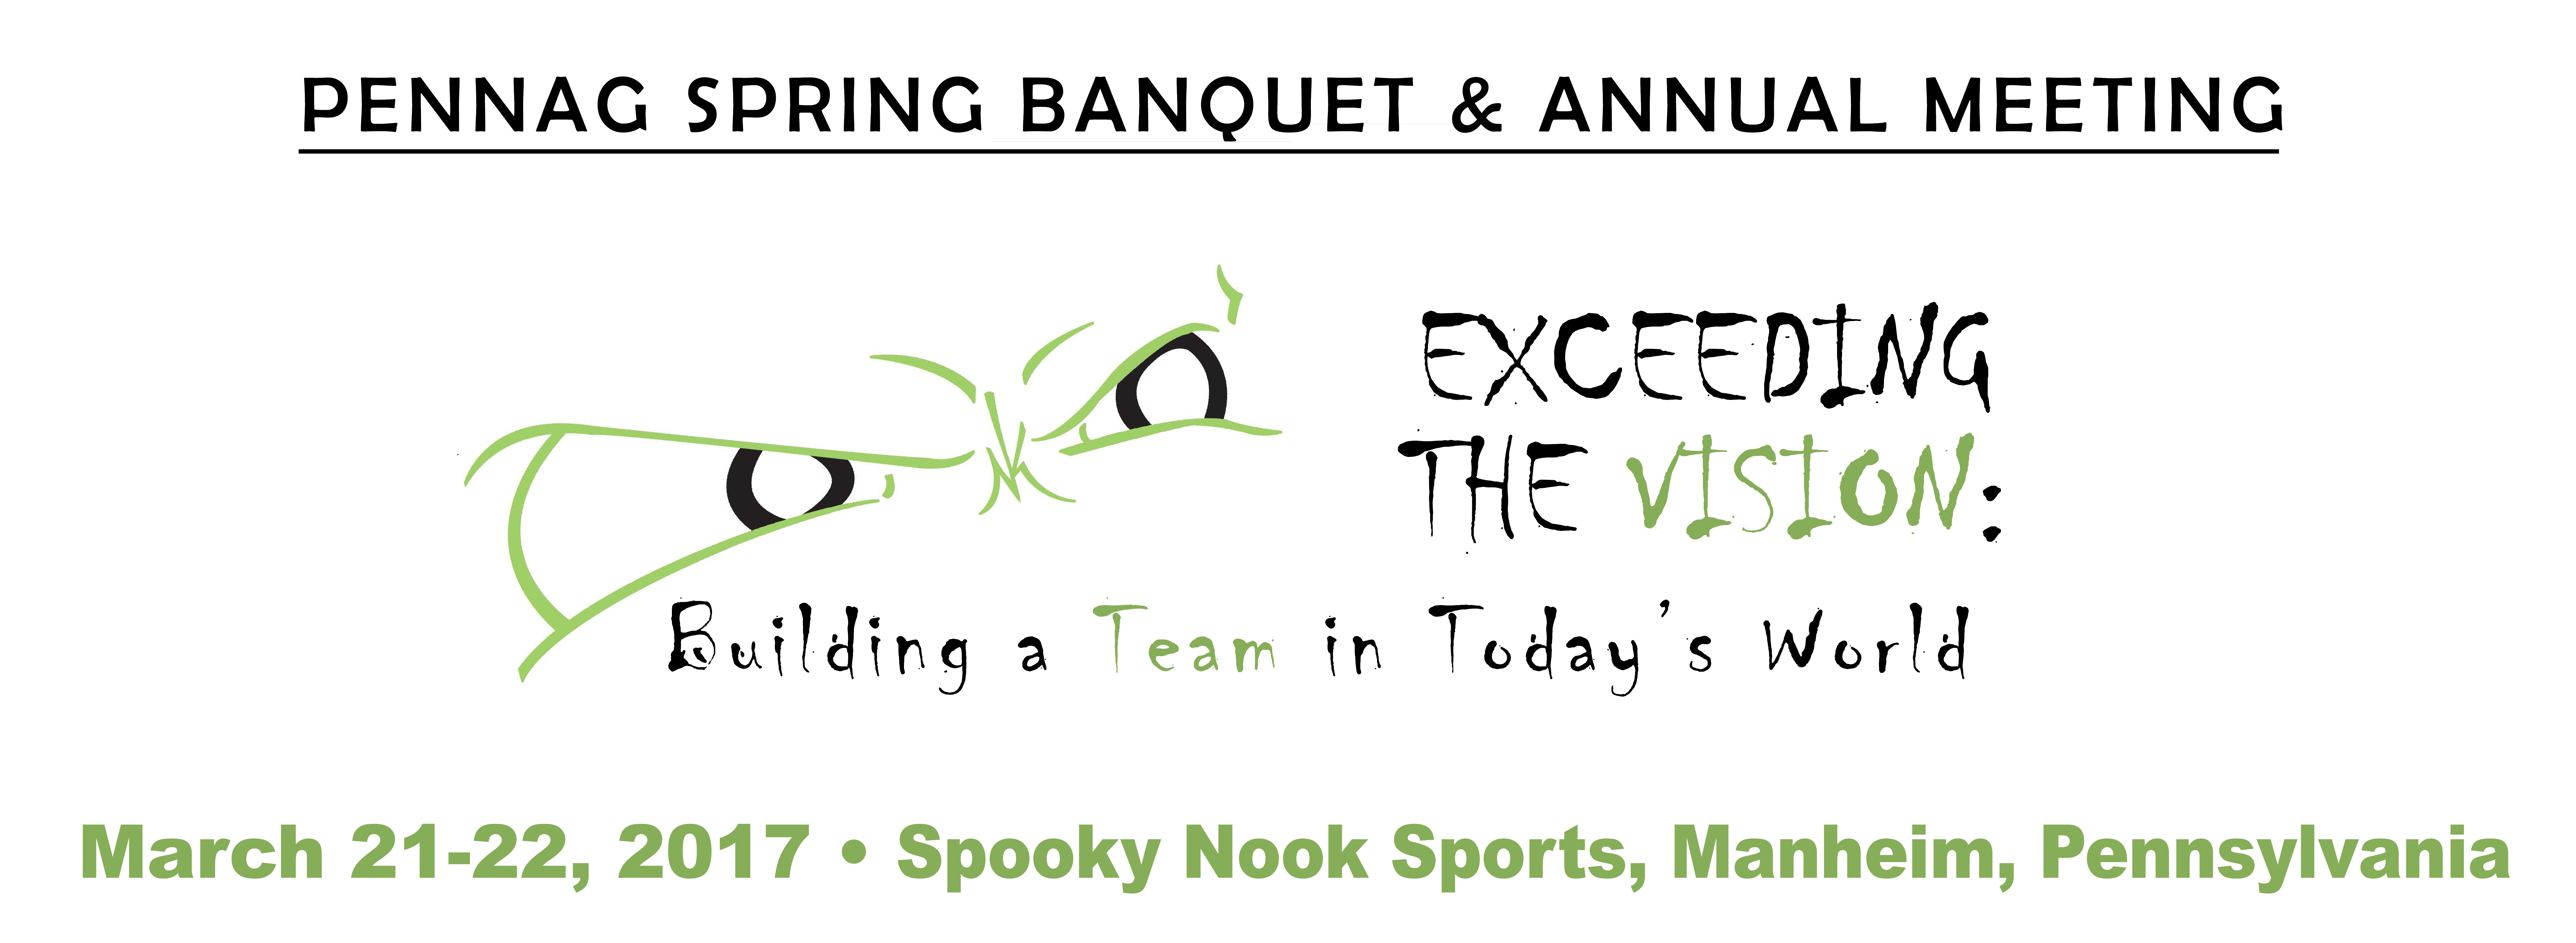 2017 PennAg Spring Banquet & Annual Meeting Registration